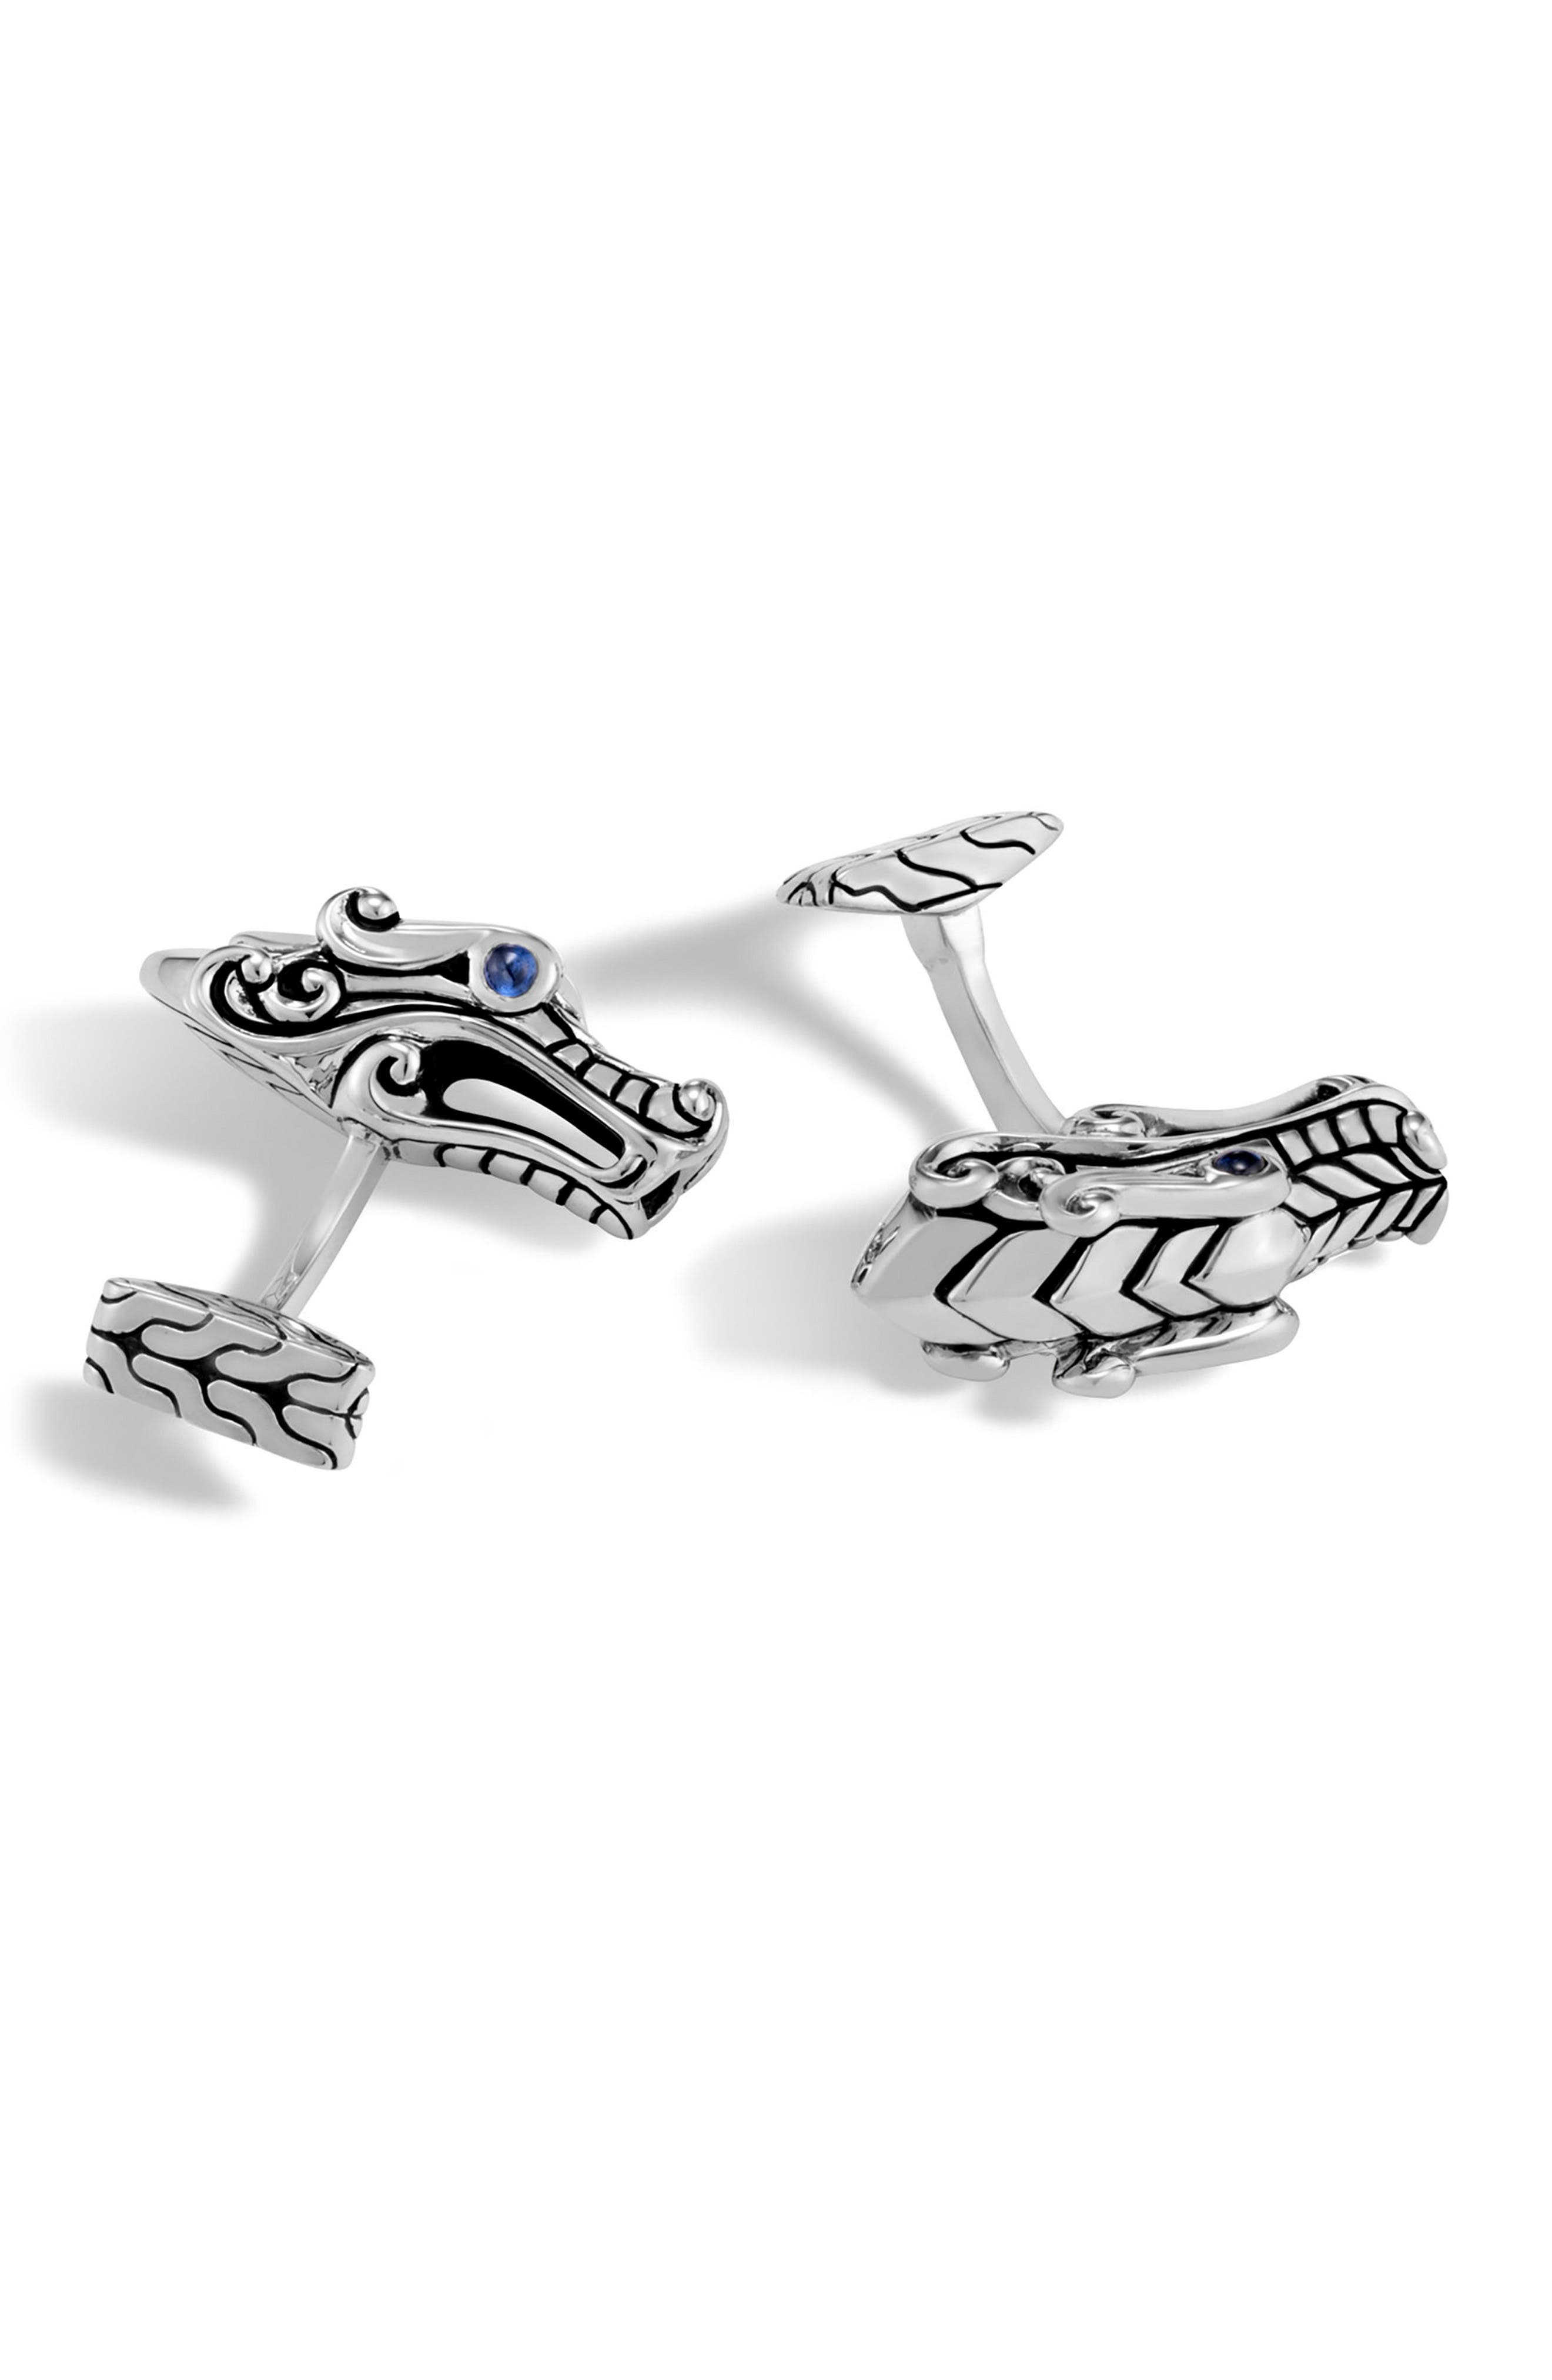 Alternate Image 1 Selected - John Hardy Legends Naga Cuff Links